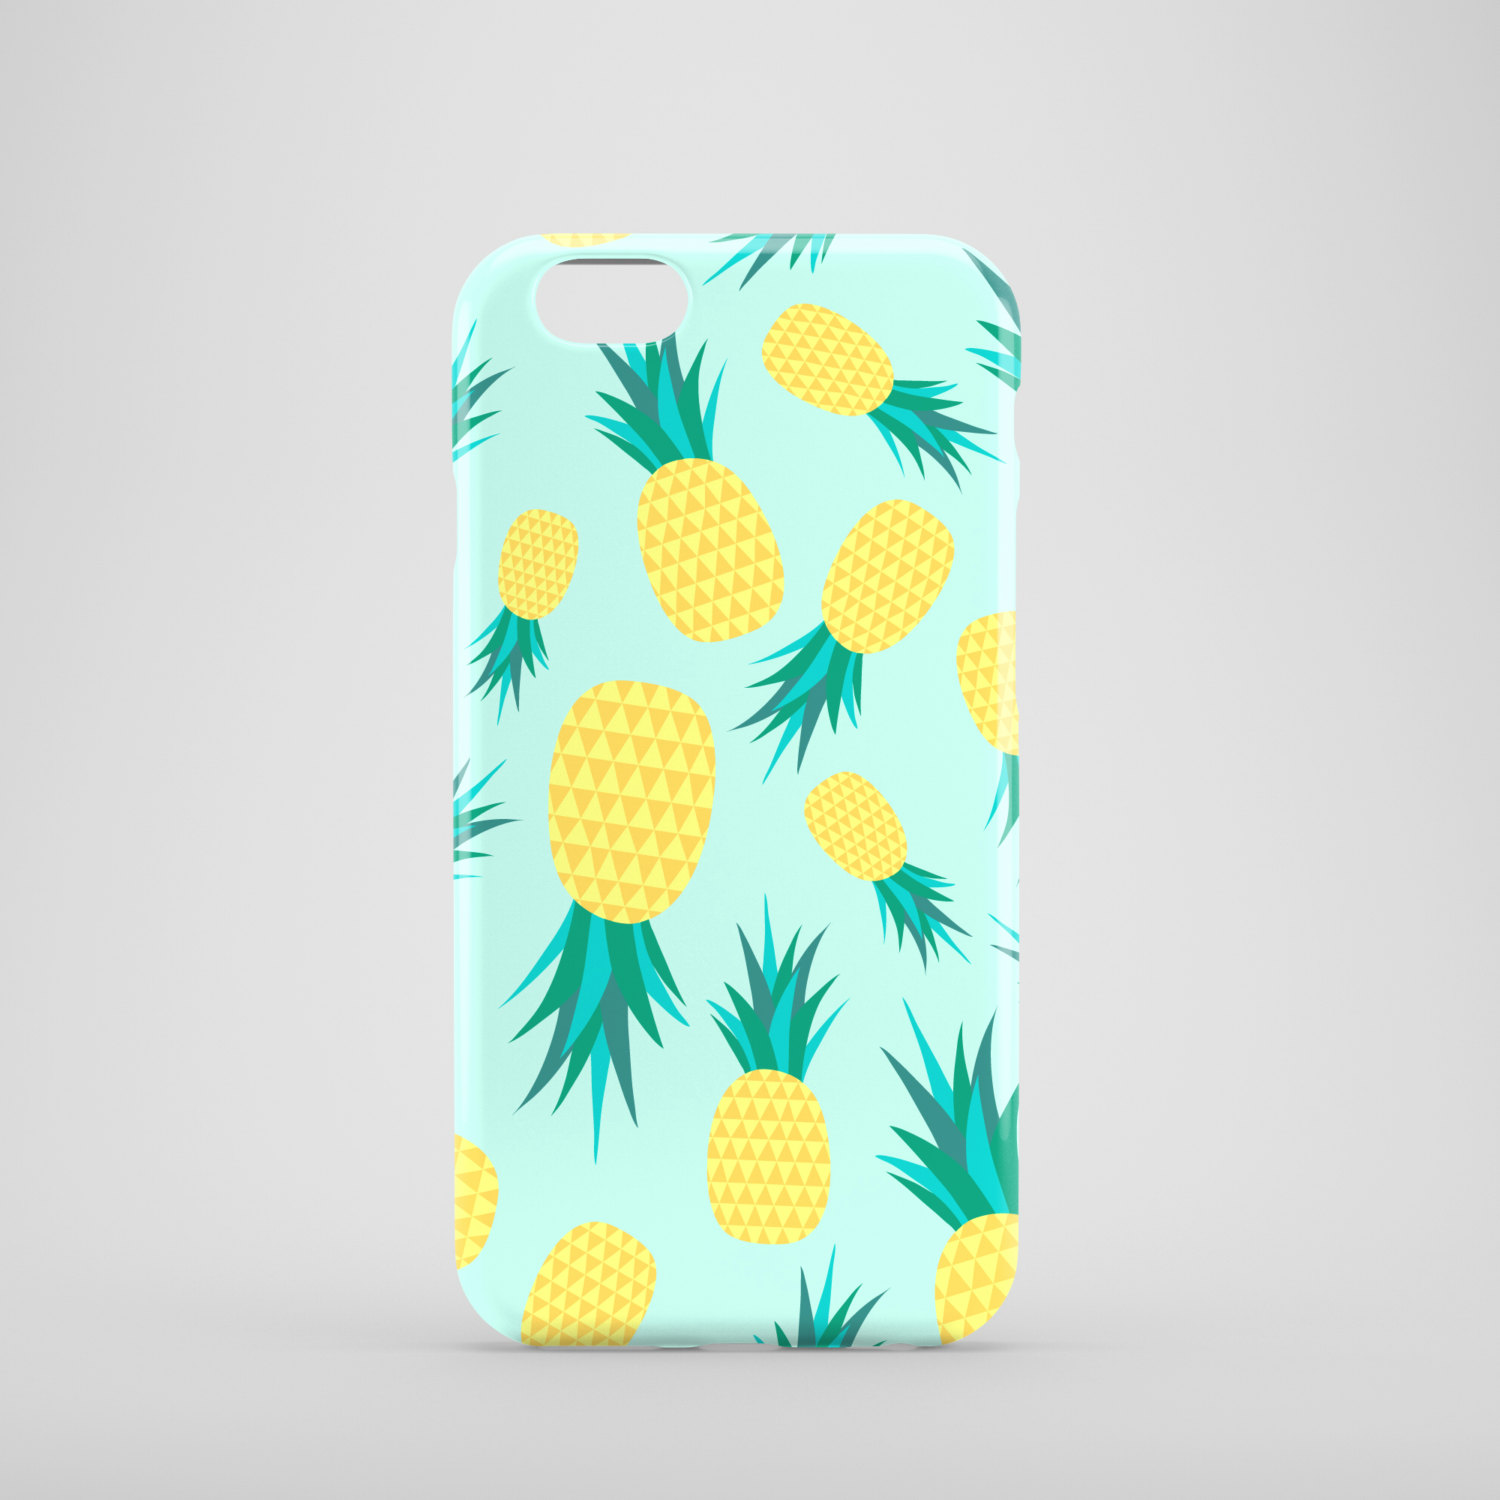 sale retailer 7dfd9 d693d Pineapples phone case / tropical phone case / fruity iPhone case / iPhone 6  / iPhone 5/5S / Samsung Galaxy S6 / FREE UK SHIPPING